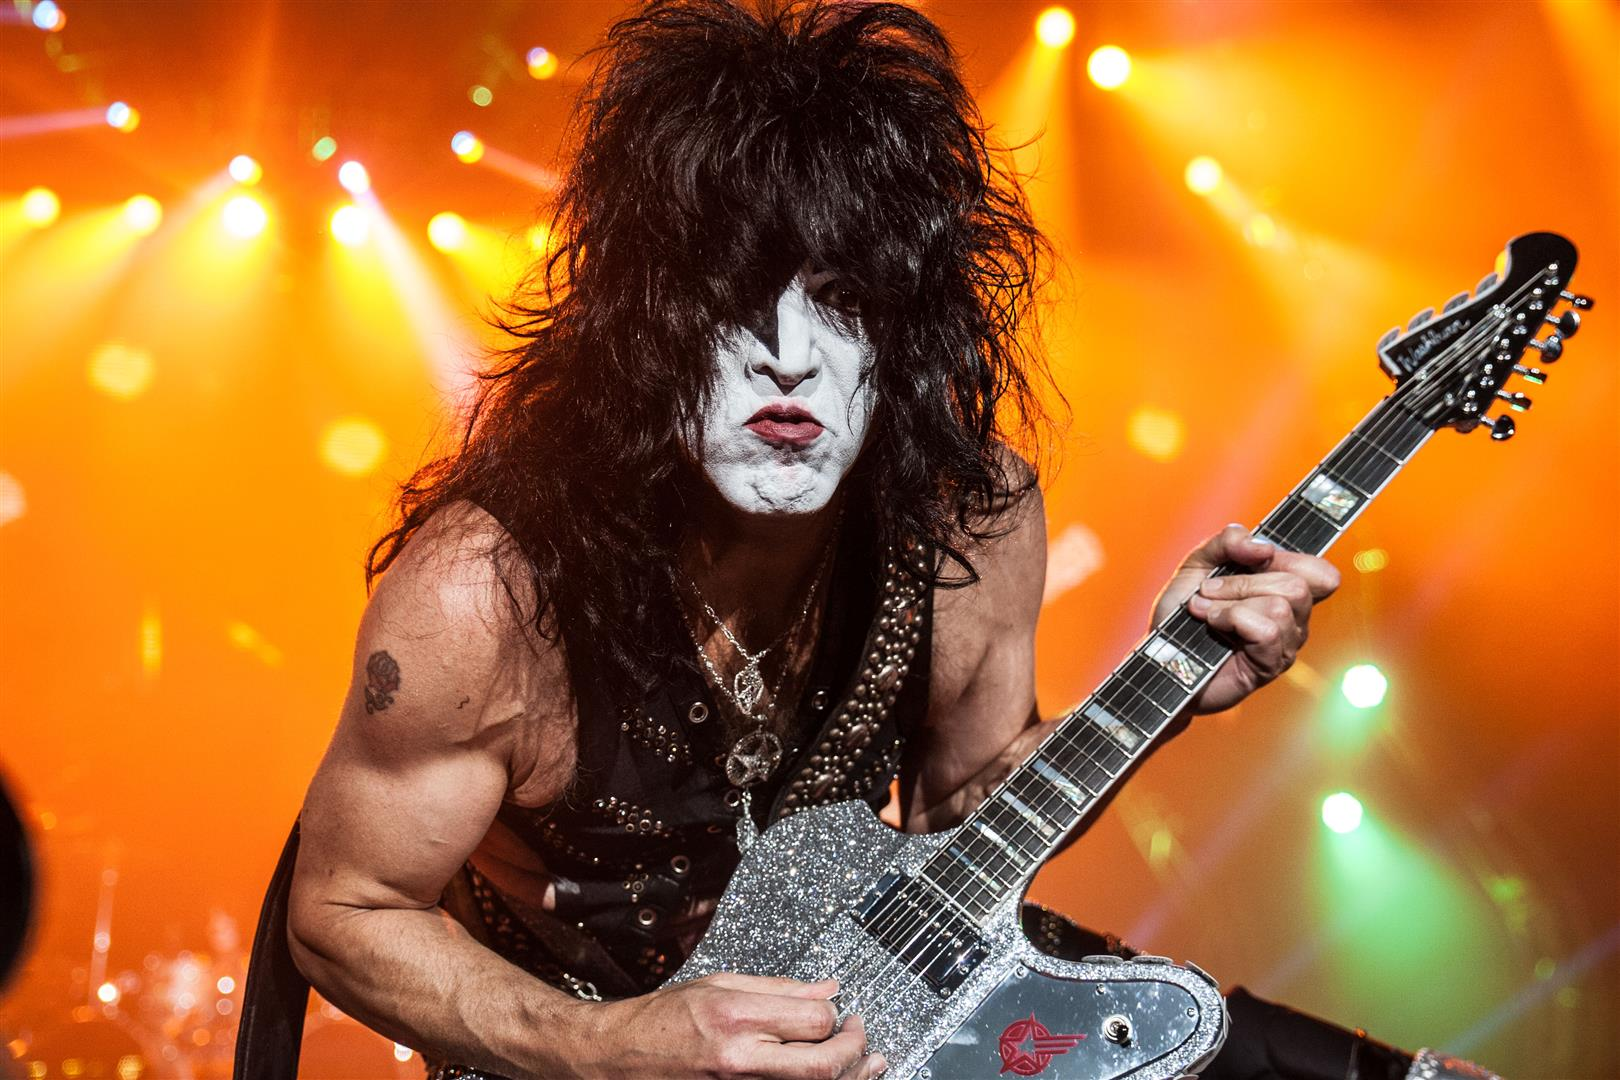 1952 Jude Stanley Bert Eisen (Tarnname Paul Stanley). Amerikanischer Musiker. Spielt in der Band Kiss. Bekannte Lieder: I Was Made for Lovin' You, God Gave Rock & Roll to You.